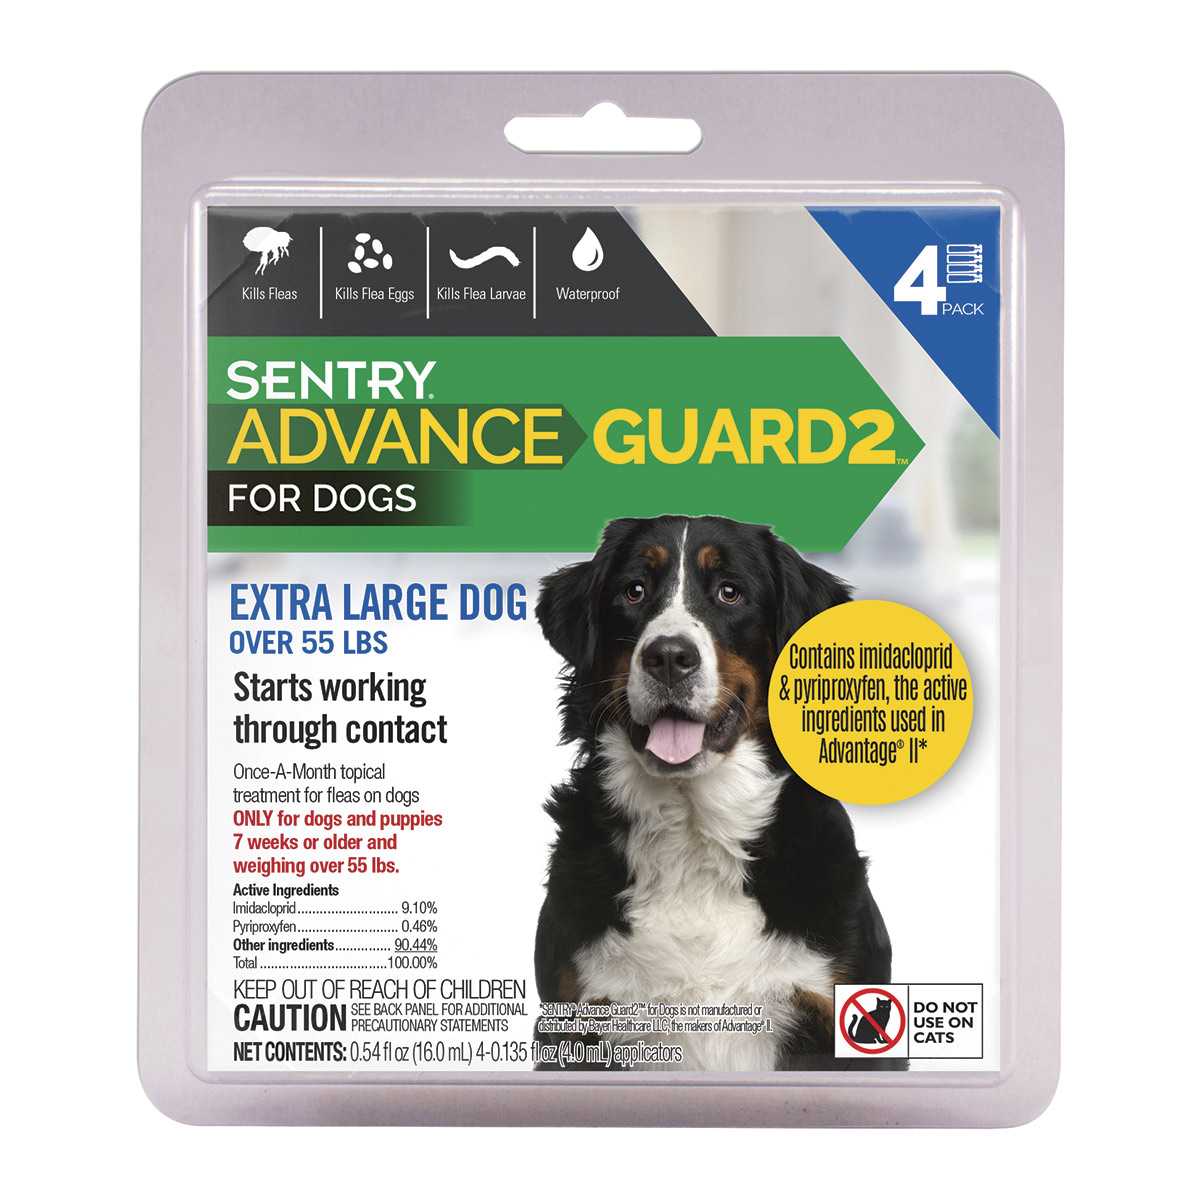 4 Pack Sentry Advance Guard 2 Extra Large Dog Over 55 lbs